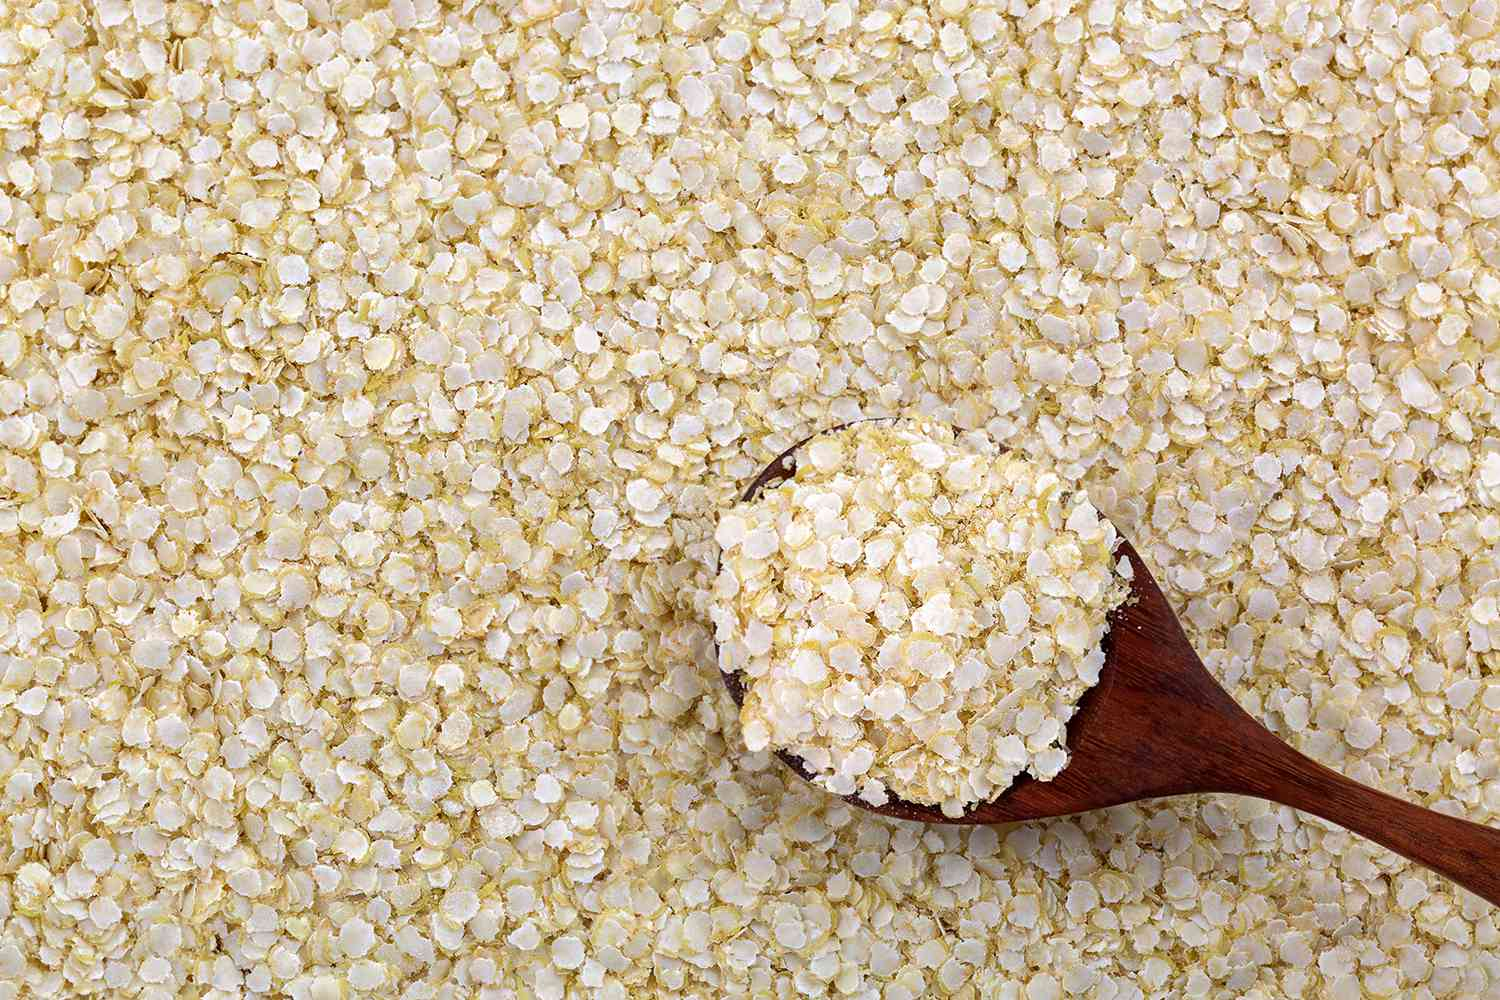 Rolled white Quinoa seed gluten-free flakes.